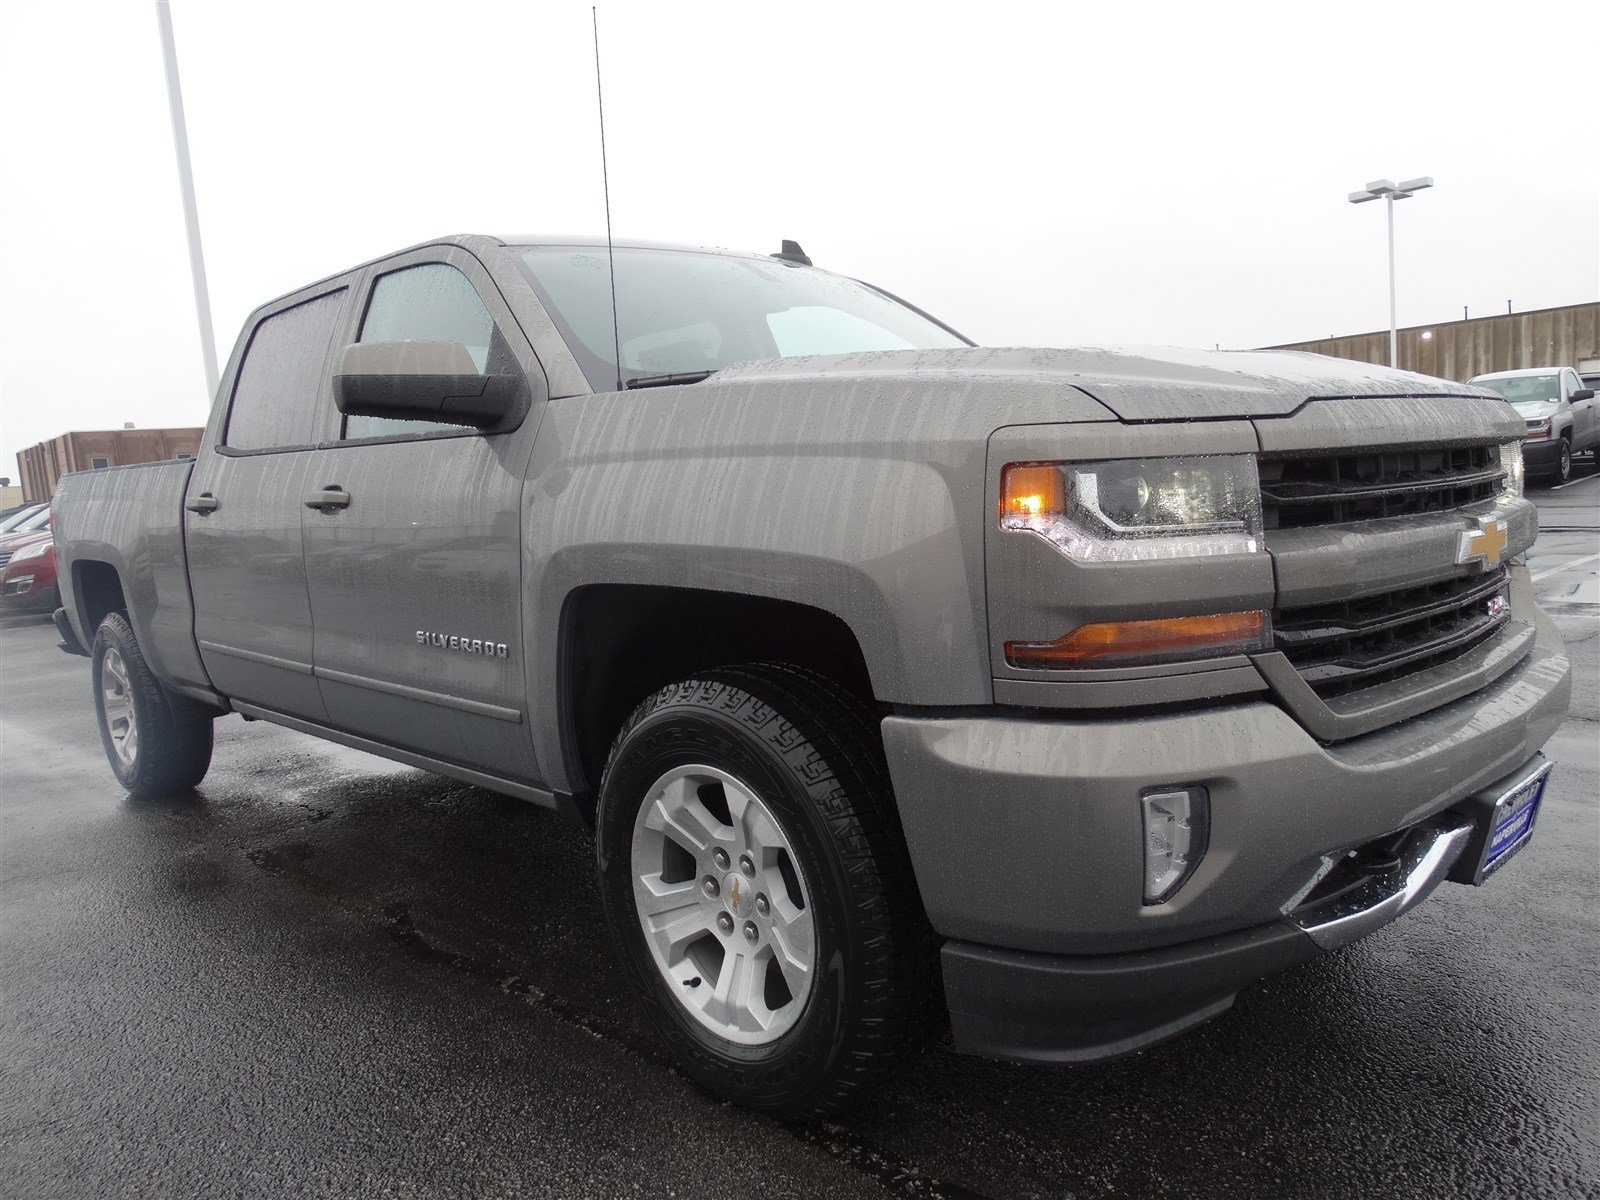 new 2017 chevrolet silverado 1500 lt crew cab pickup in naperville t6141 chevrolet of naperville. Black Bedroom Furniture Sets. Home Design Ideas